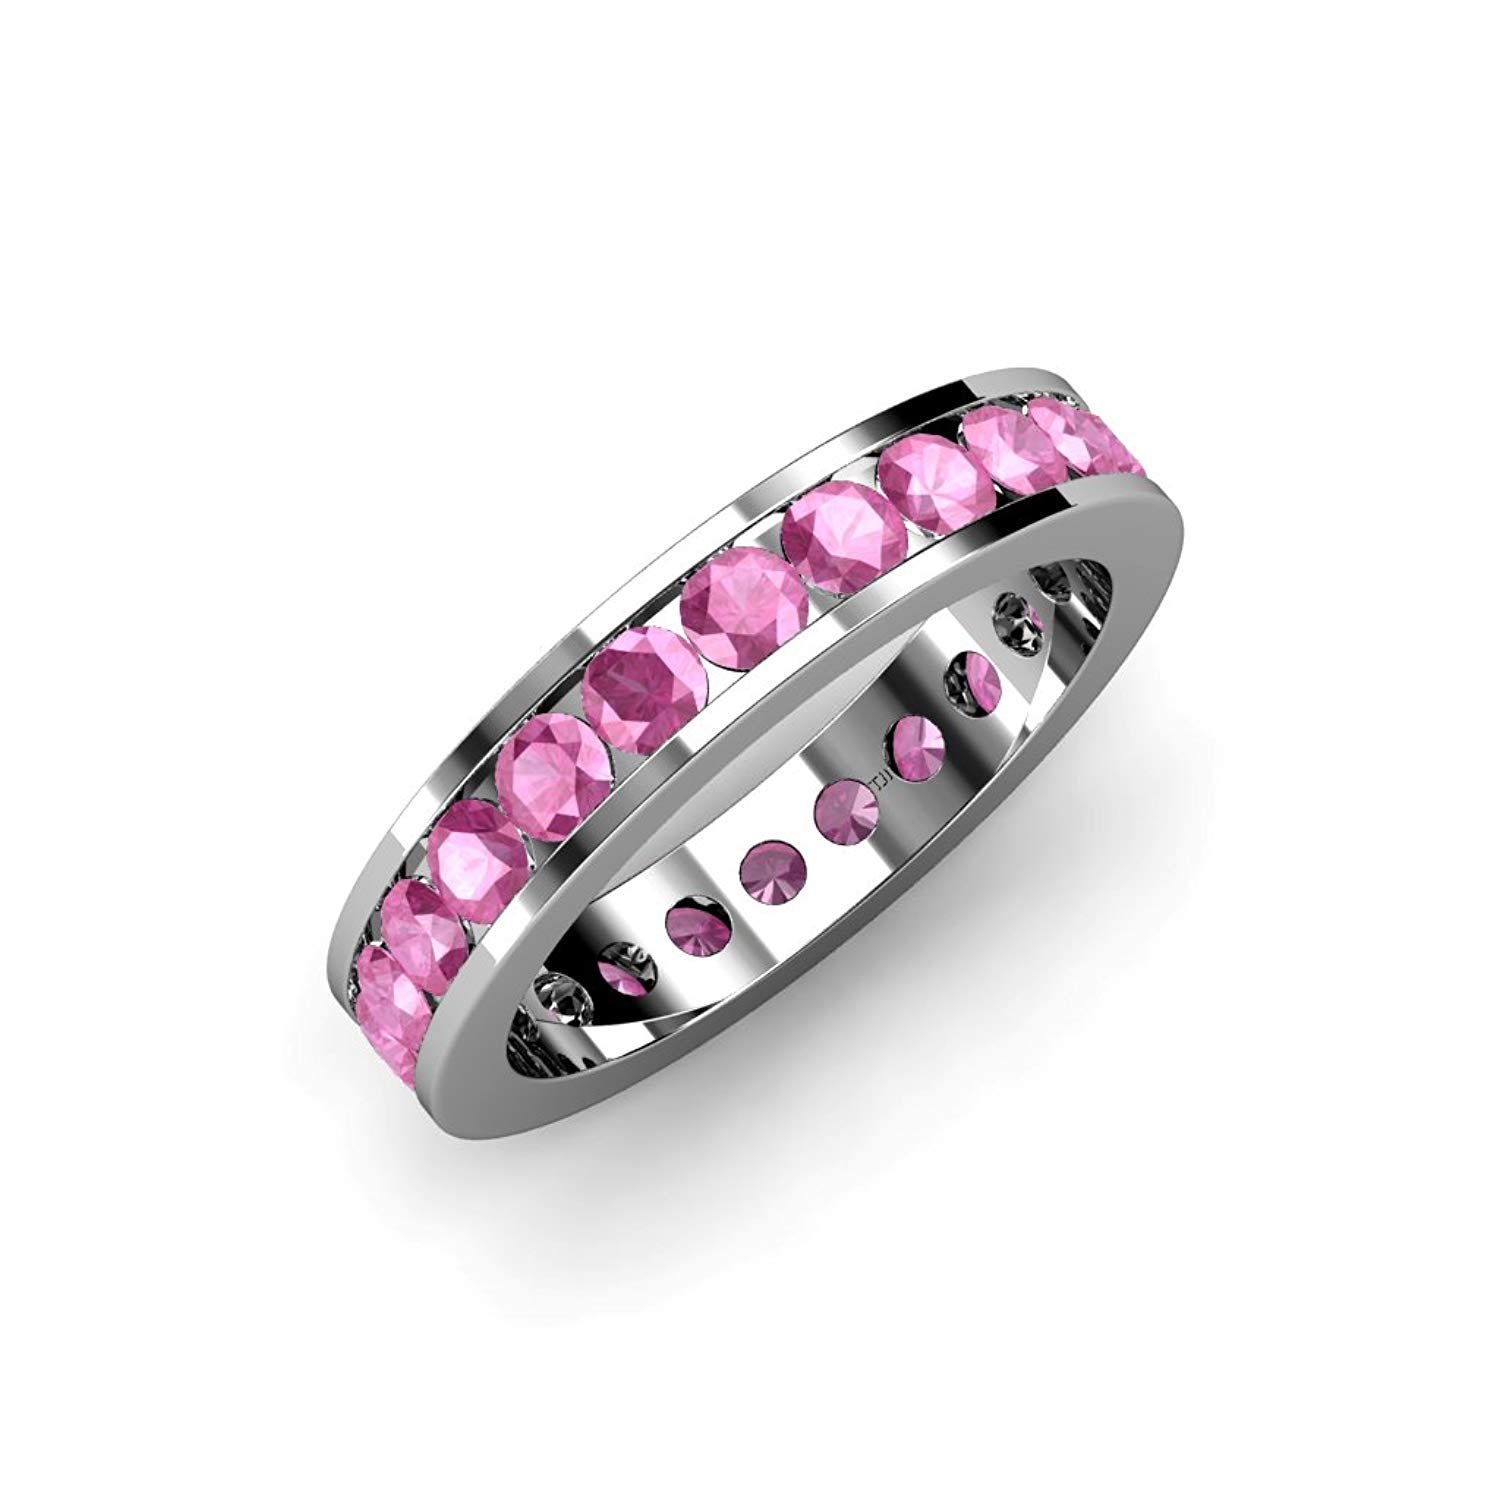 Pink Sapphire Channel Set Eternity Band 2.86 ct tw to 3.36 ct tw in 14K White Gold.size 6.5 by TriJewels